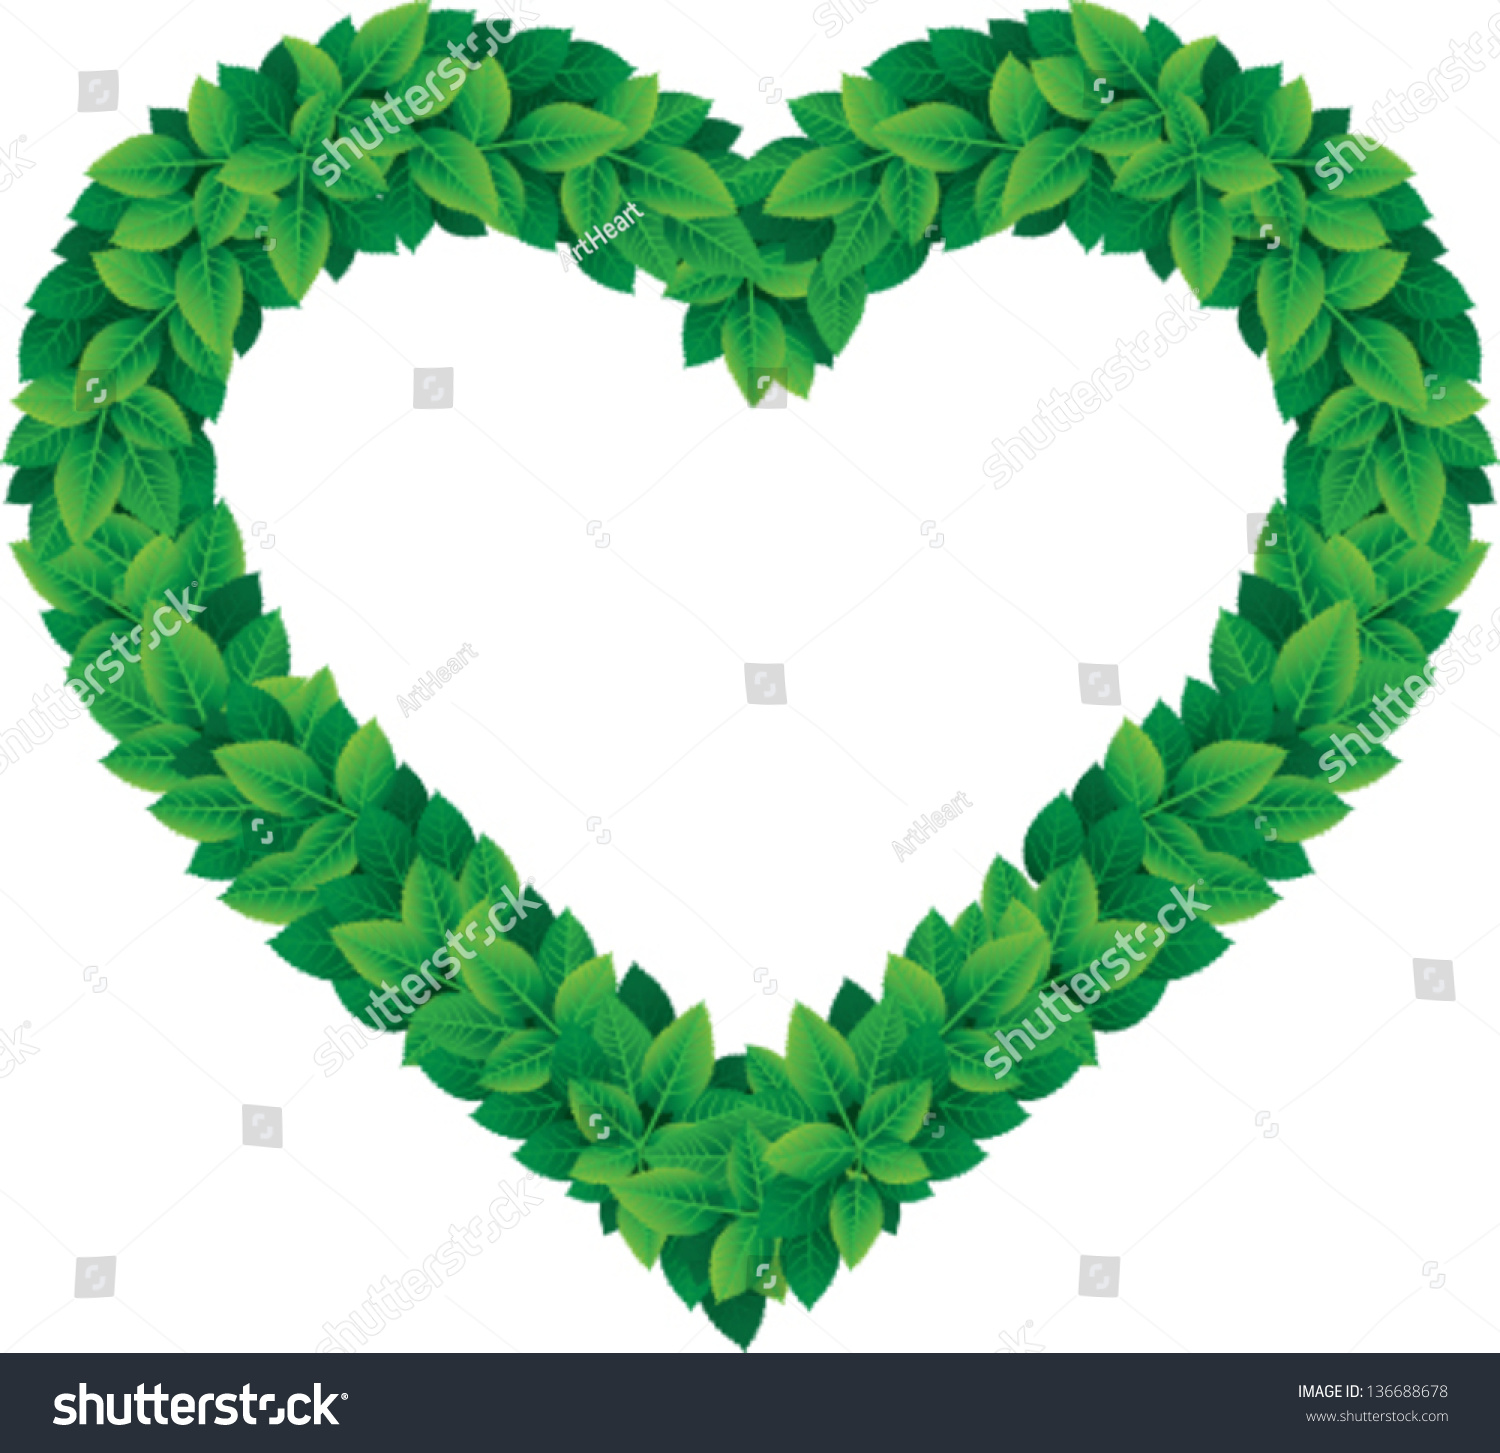 Heart shape made leaves symbolize love stock vector 136688678 heart shape made from leaves to symbolize love of nature inspired eco friendly things buycottarizona Image collections